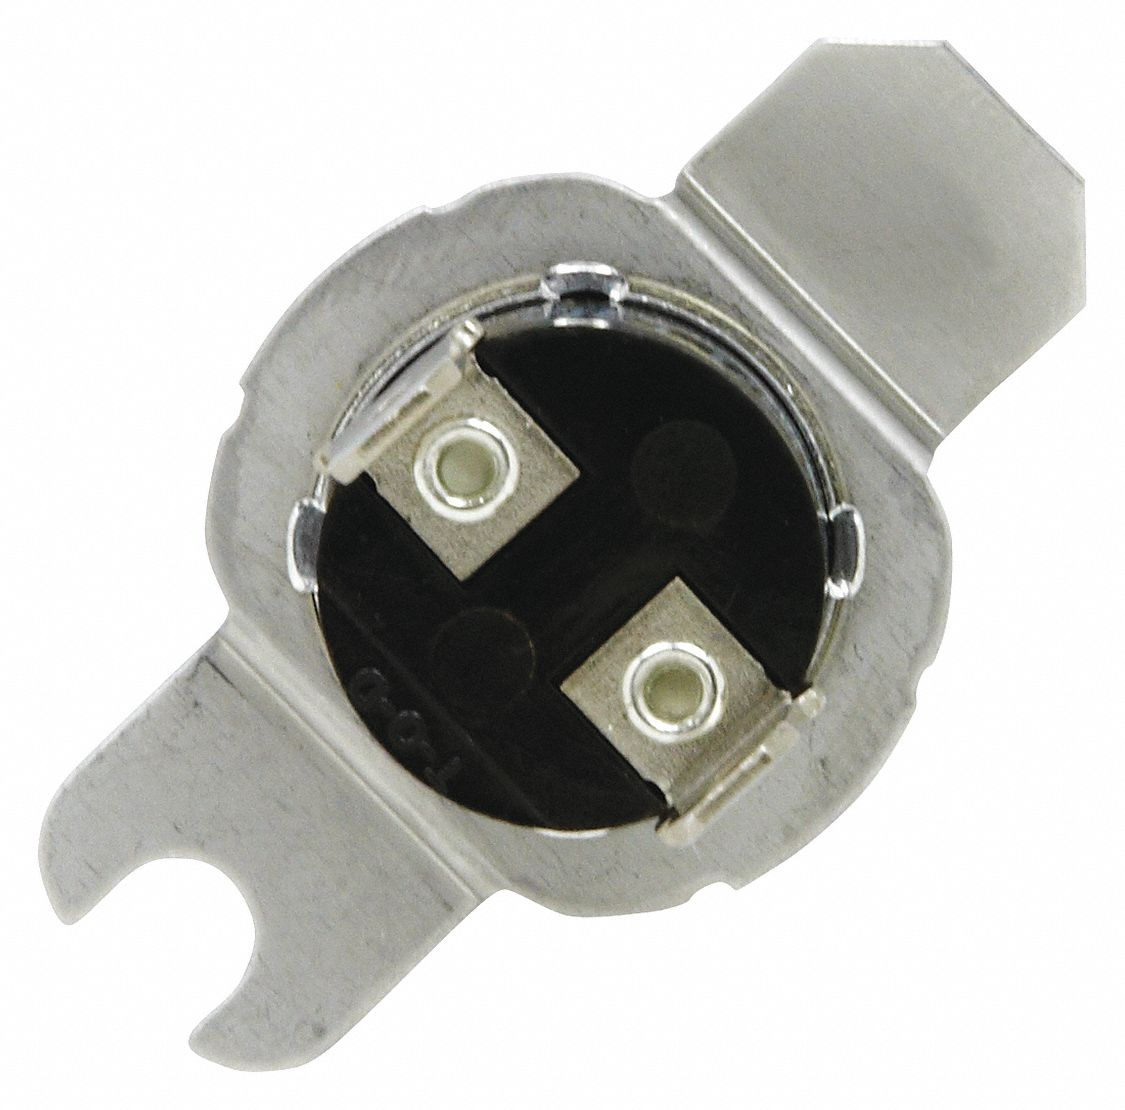 Thermostat, Hi-Limit,  Fits Brand GE, Hotpoint, Kenmore